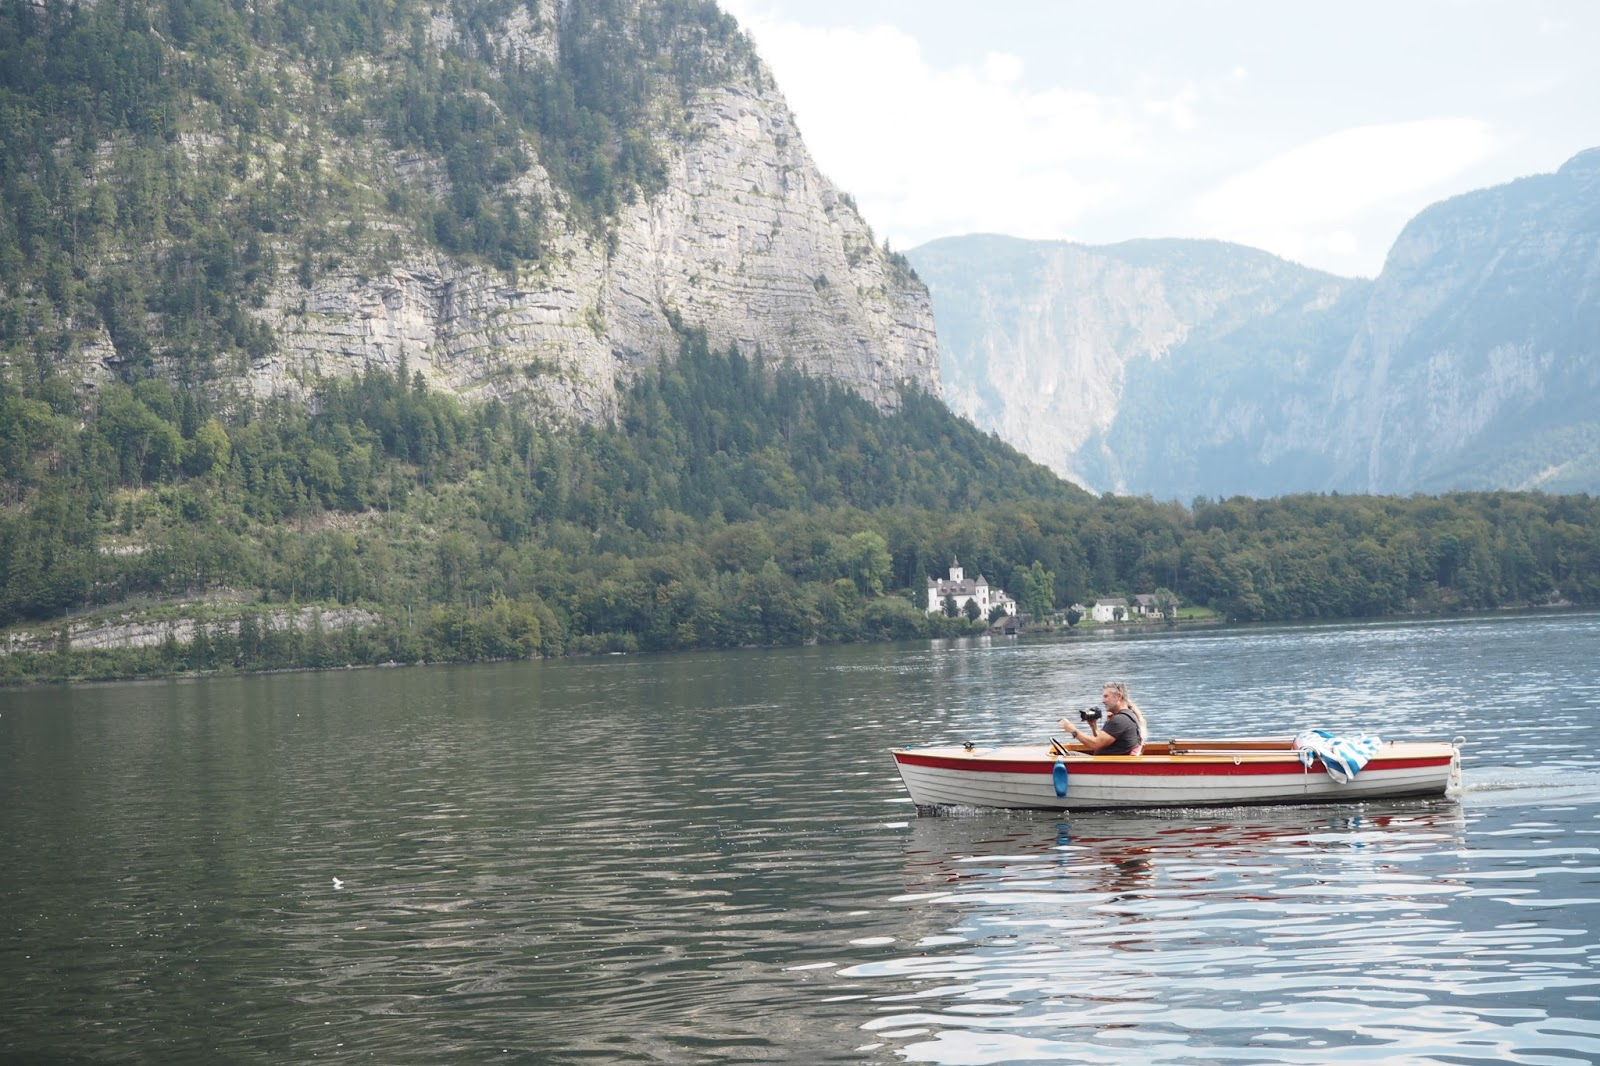 Taking a boat ride in Hallstatt